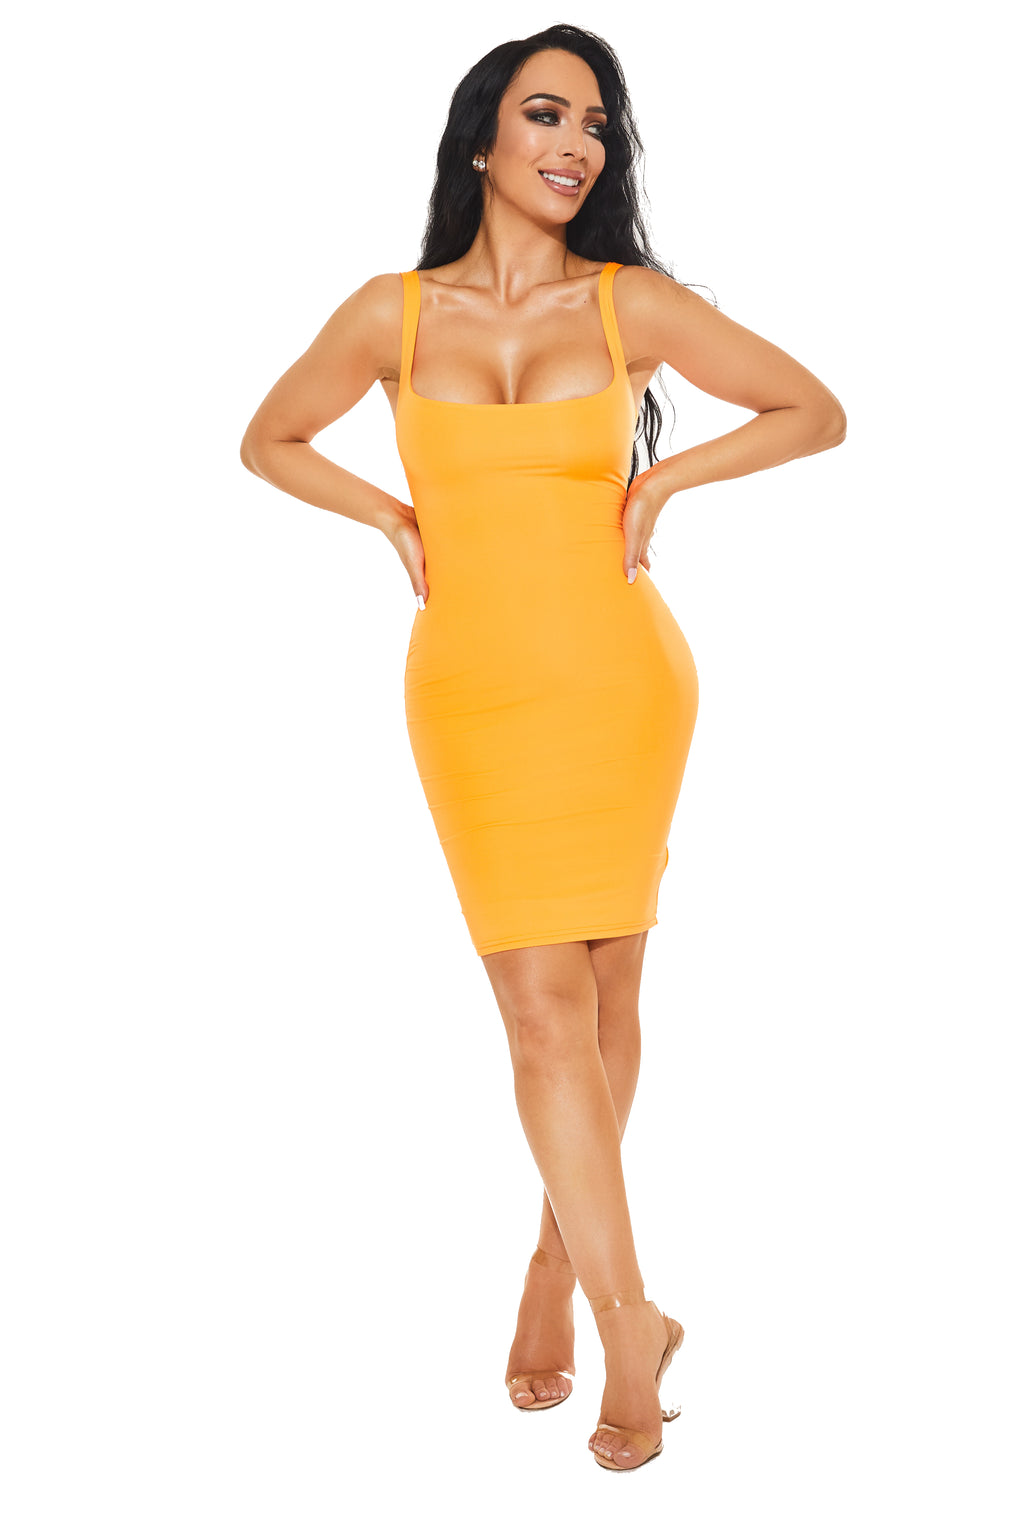 NOT SO BASIC, BASIC DRESS - Neon Orange - www.prettyboutique.com